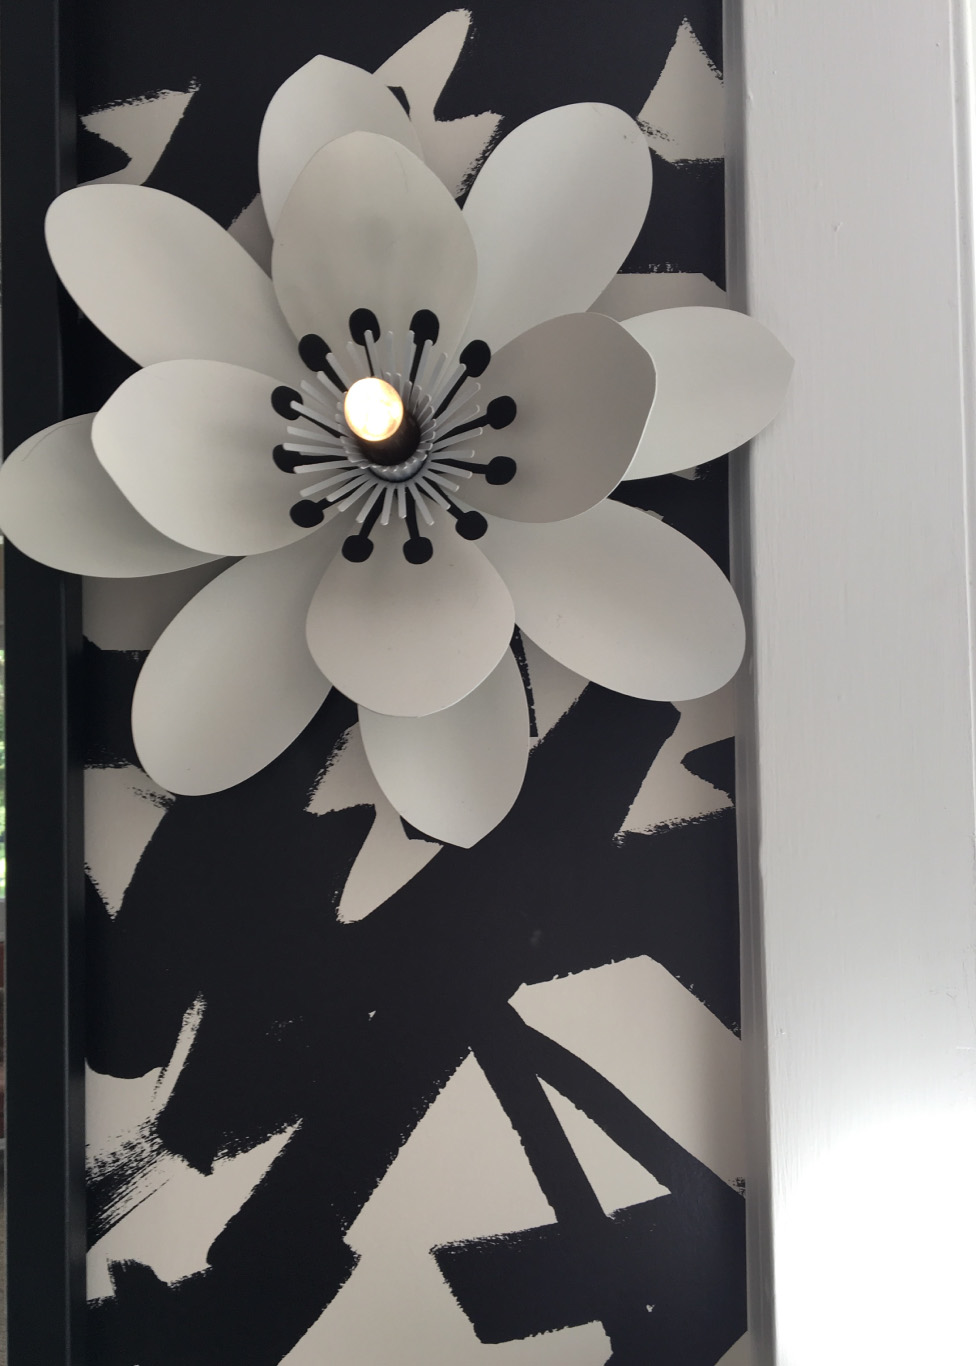 Fantasy Flower Sconce in Laura Burleson's Bathroom Design